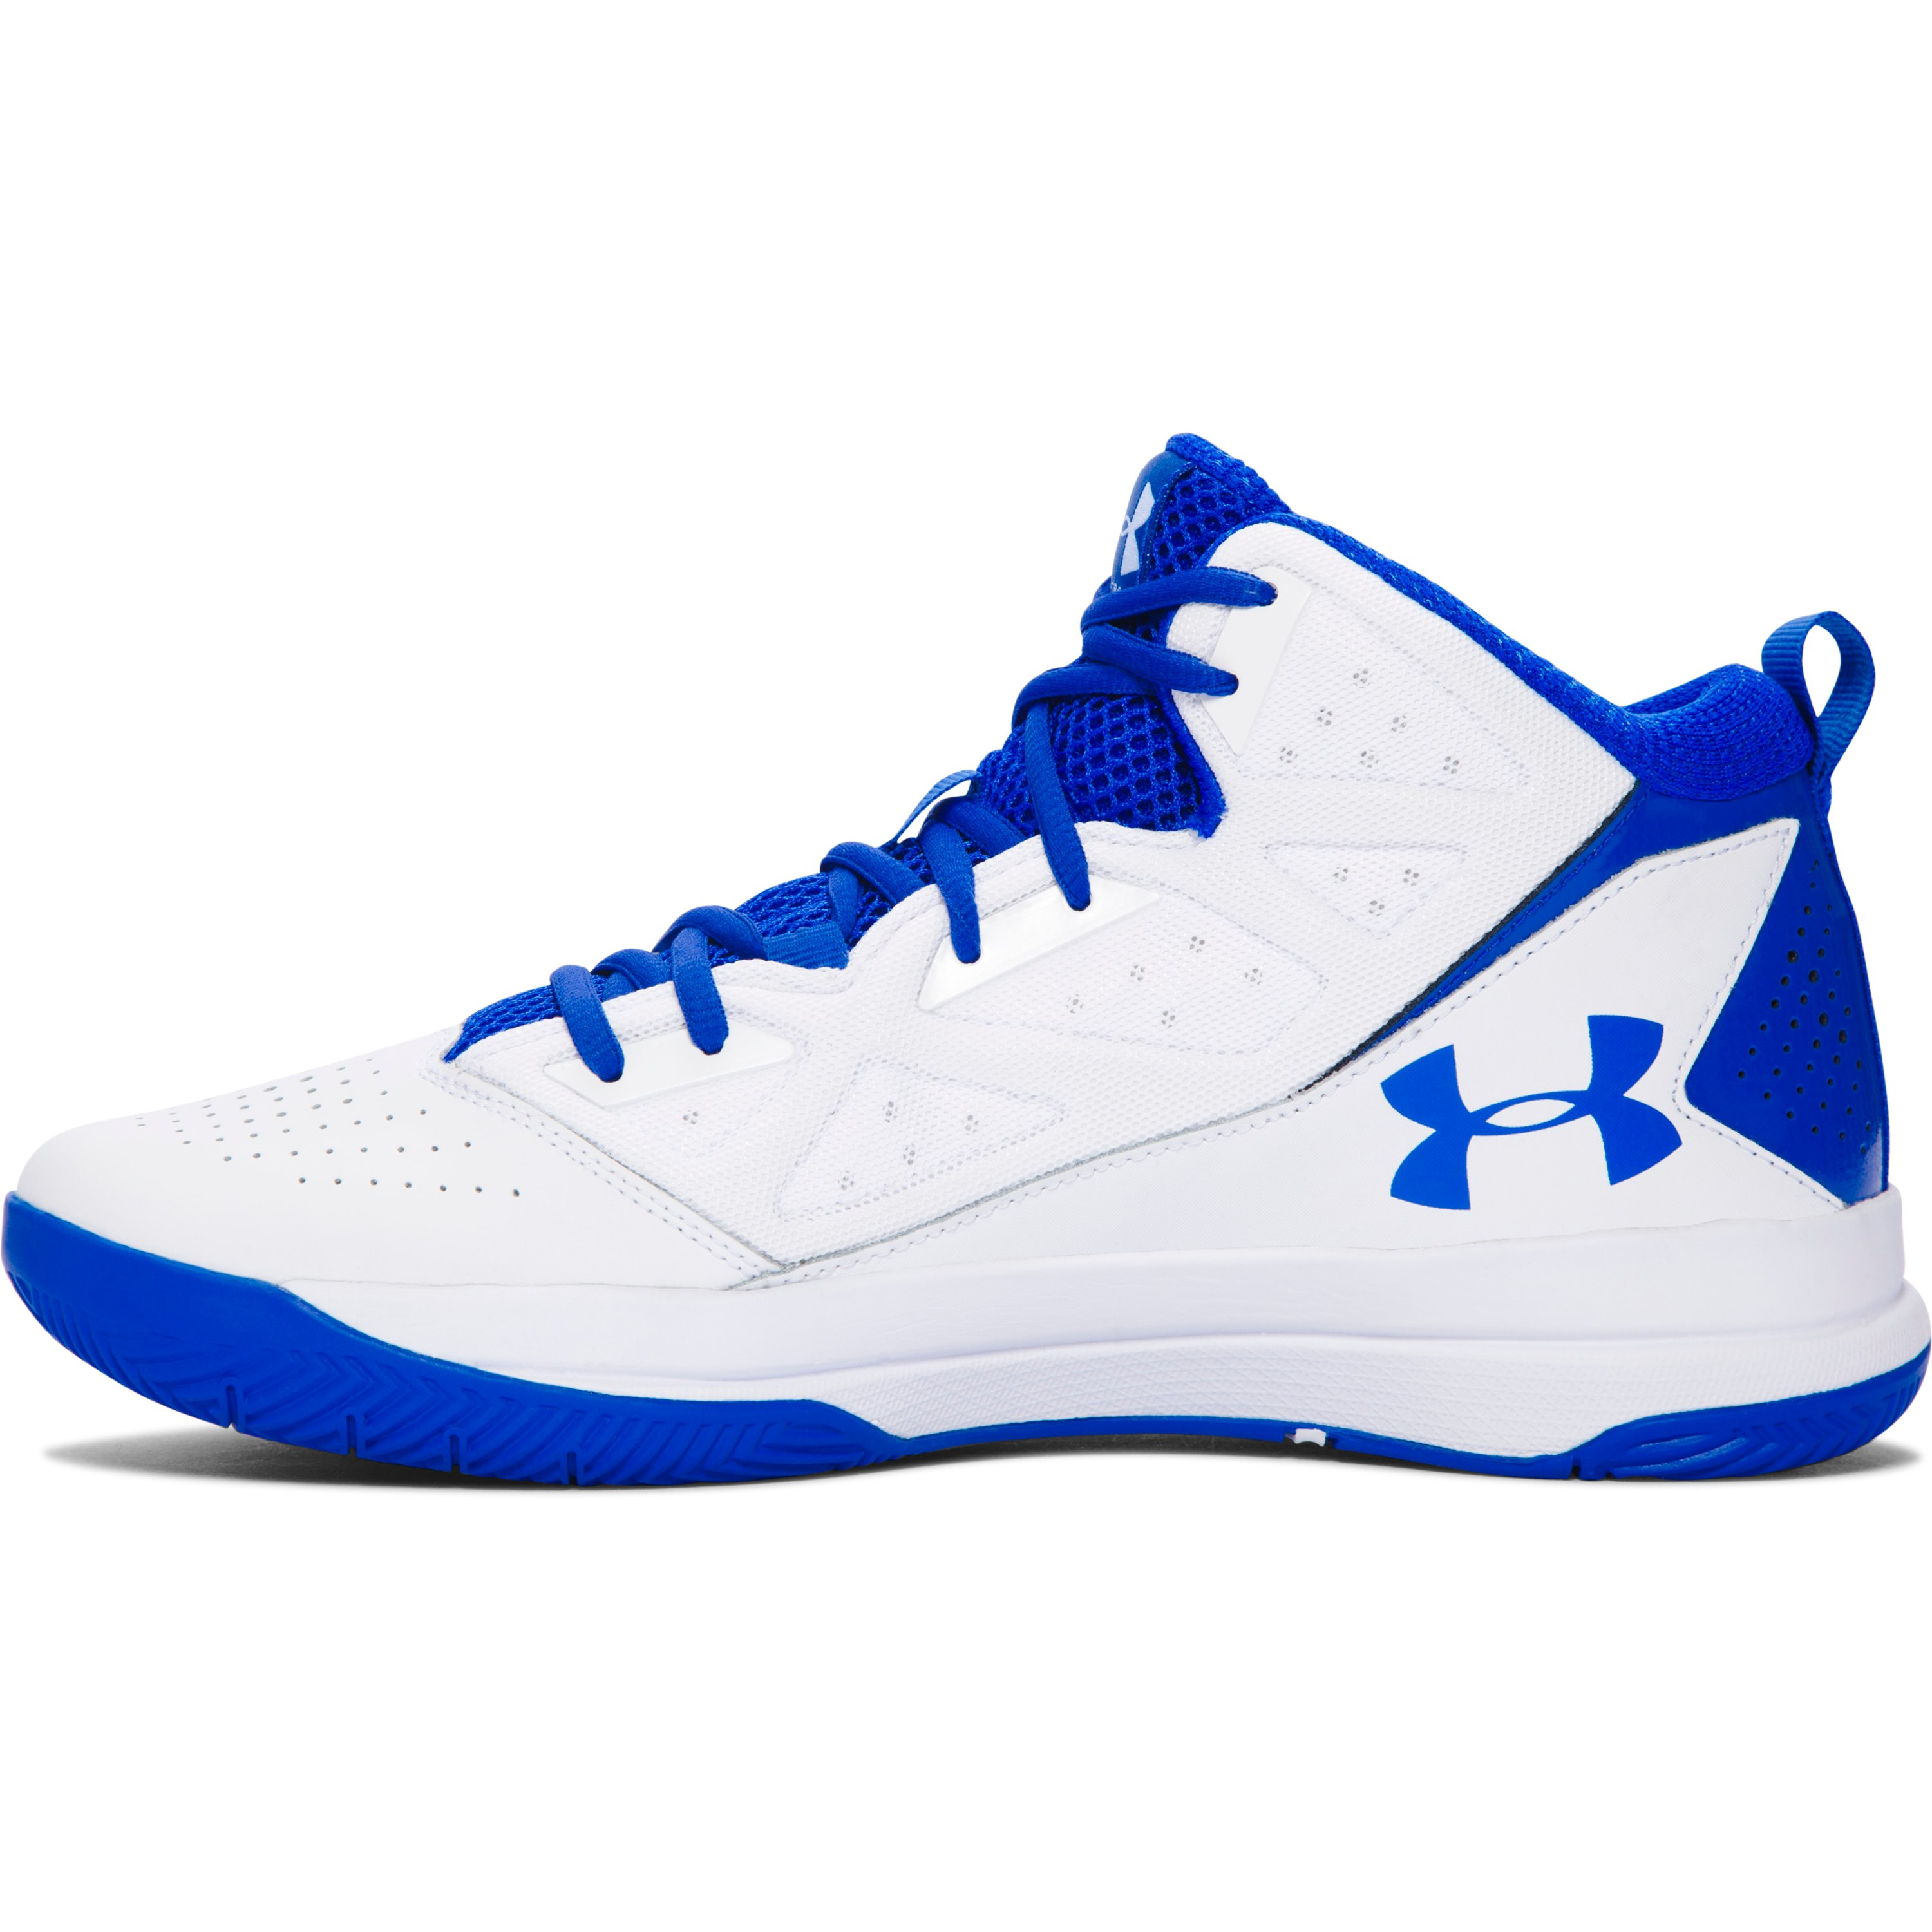 Under Armour Jet Mid Men S Basketball Shoes